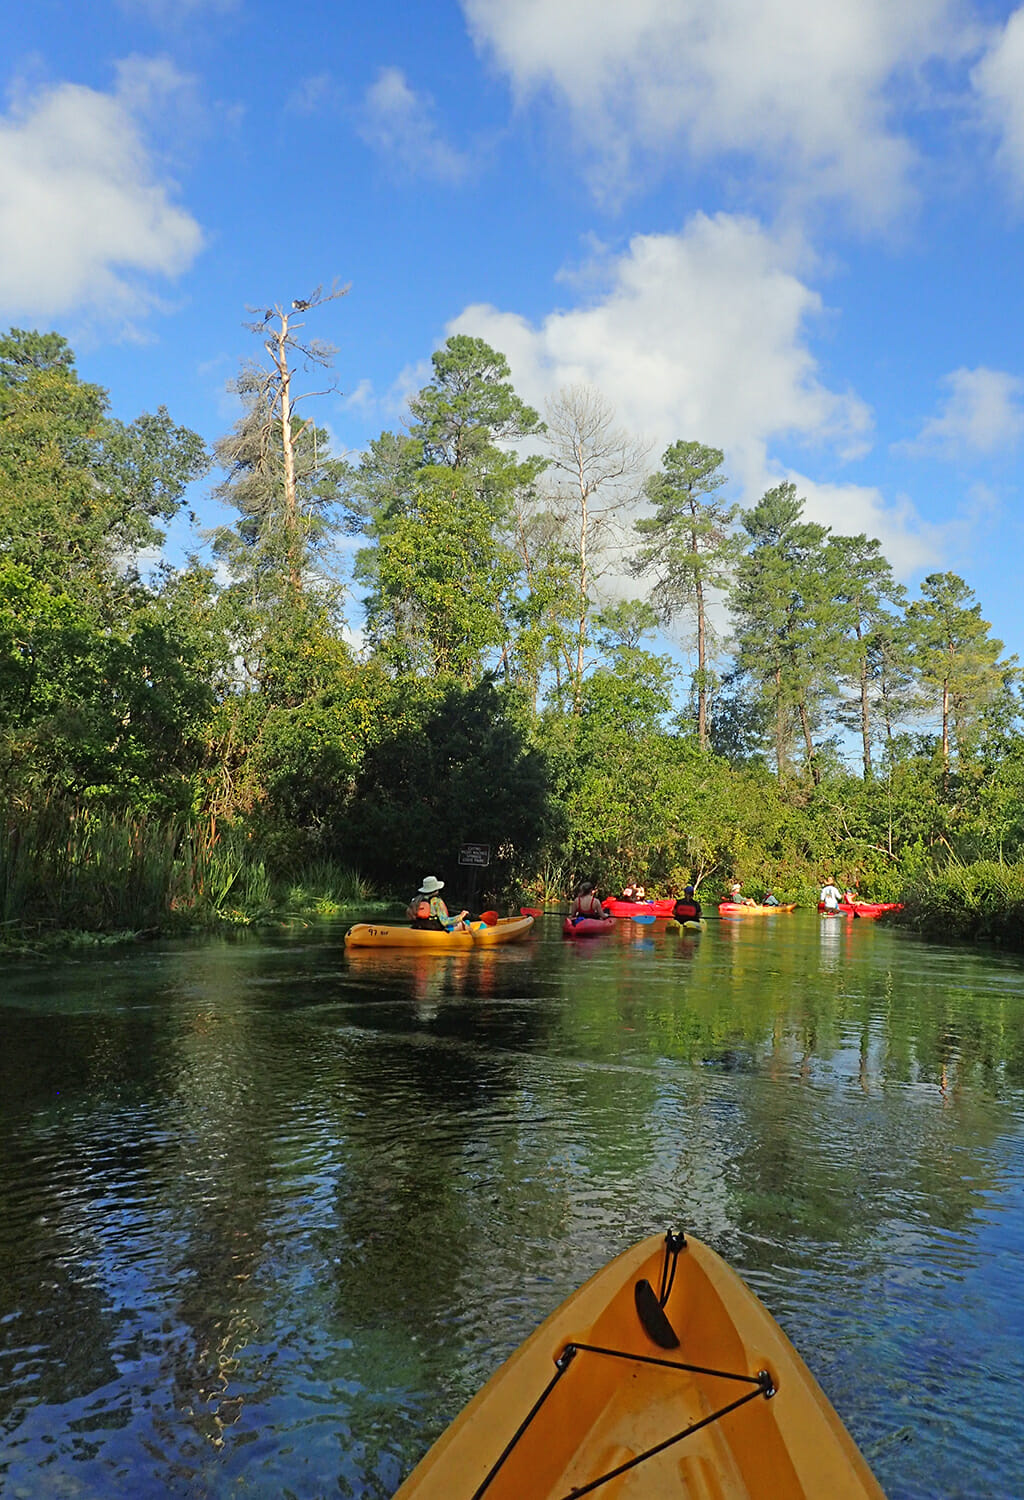 One of Florida's most beautiful paddling trips, the Weeki Wachee River rises from first magnitude Weeki Wachee Springs and winds through lush floodplain forests as it is fed by hundreds of smaller springs along this 5.5-mile paddling run.